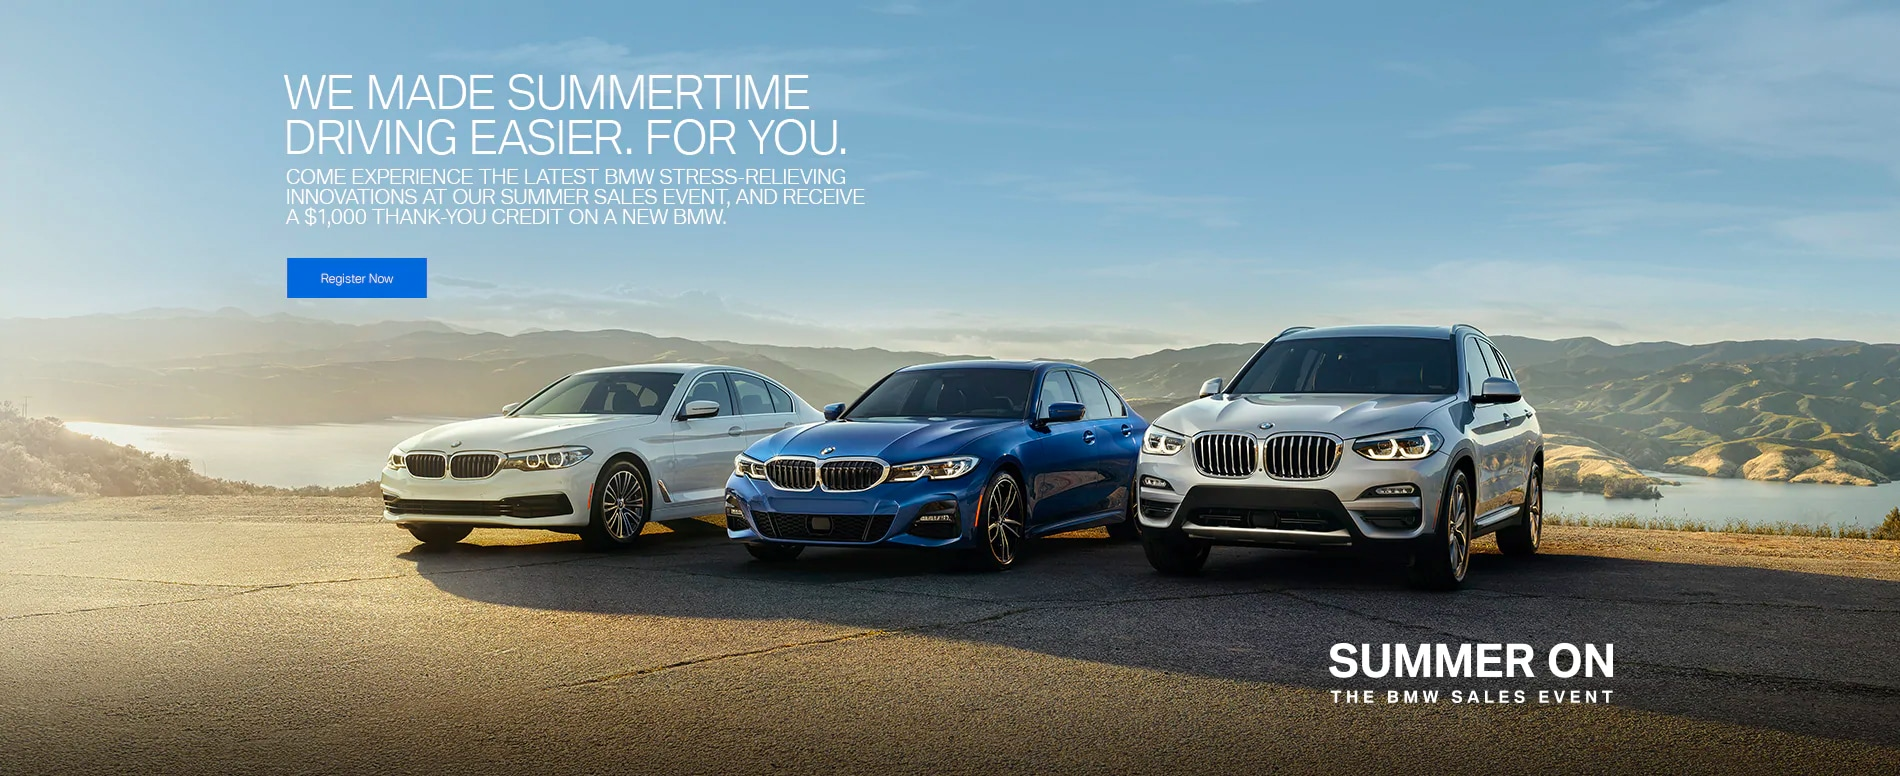 Plaza Bmw New Bmw Dealer Used Car Dealership Serving St Louis Mo